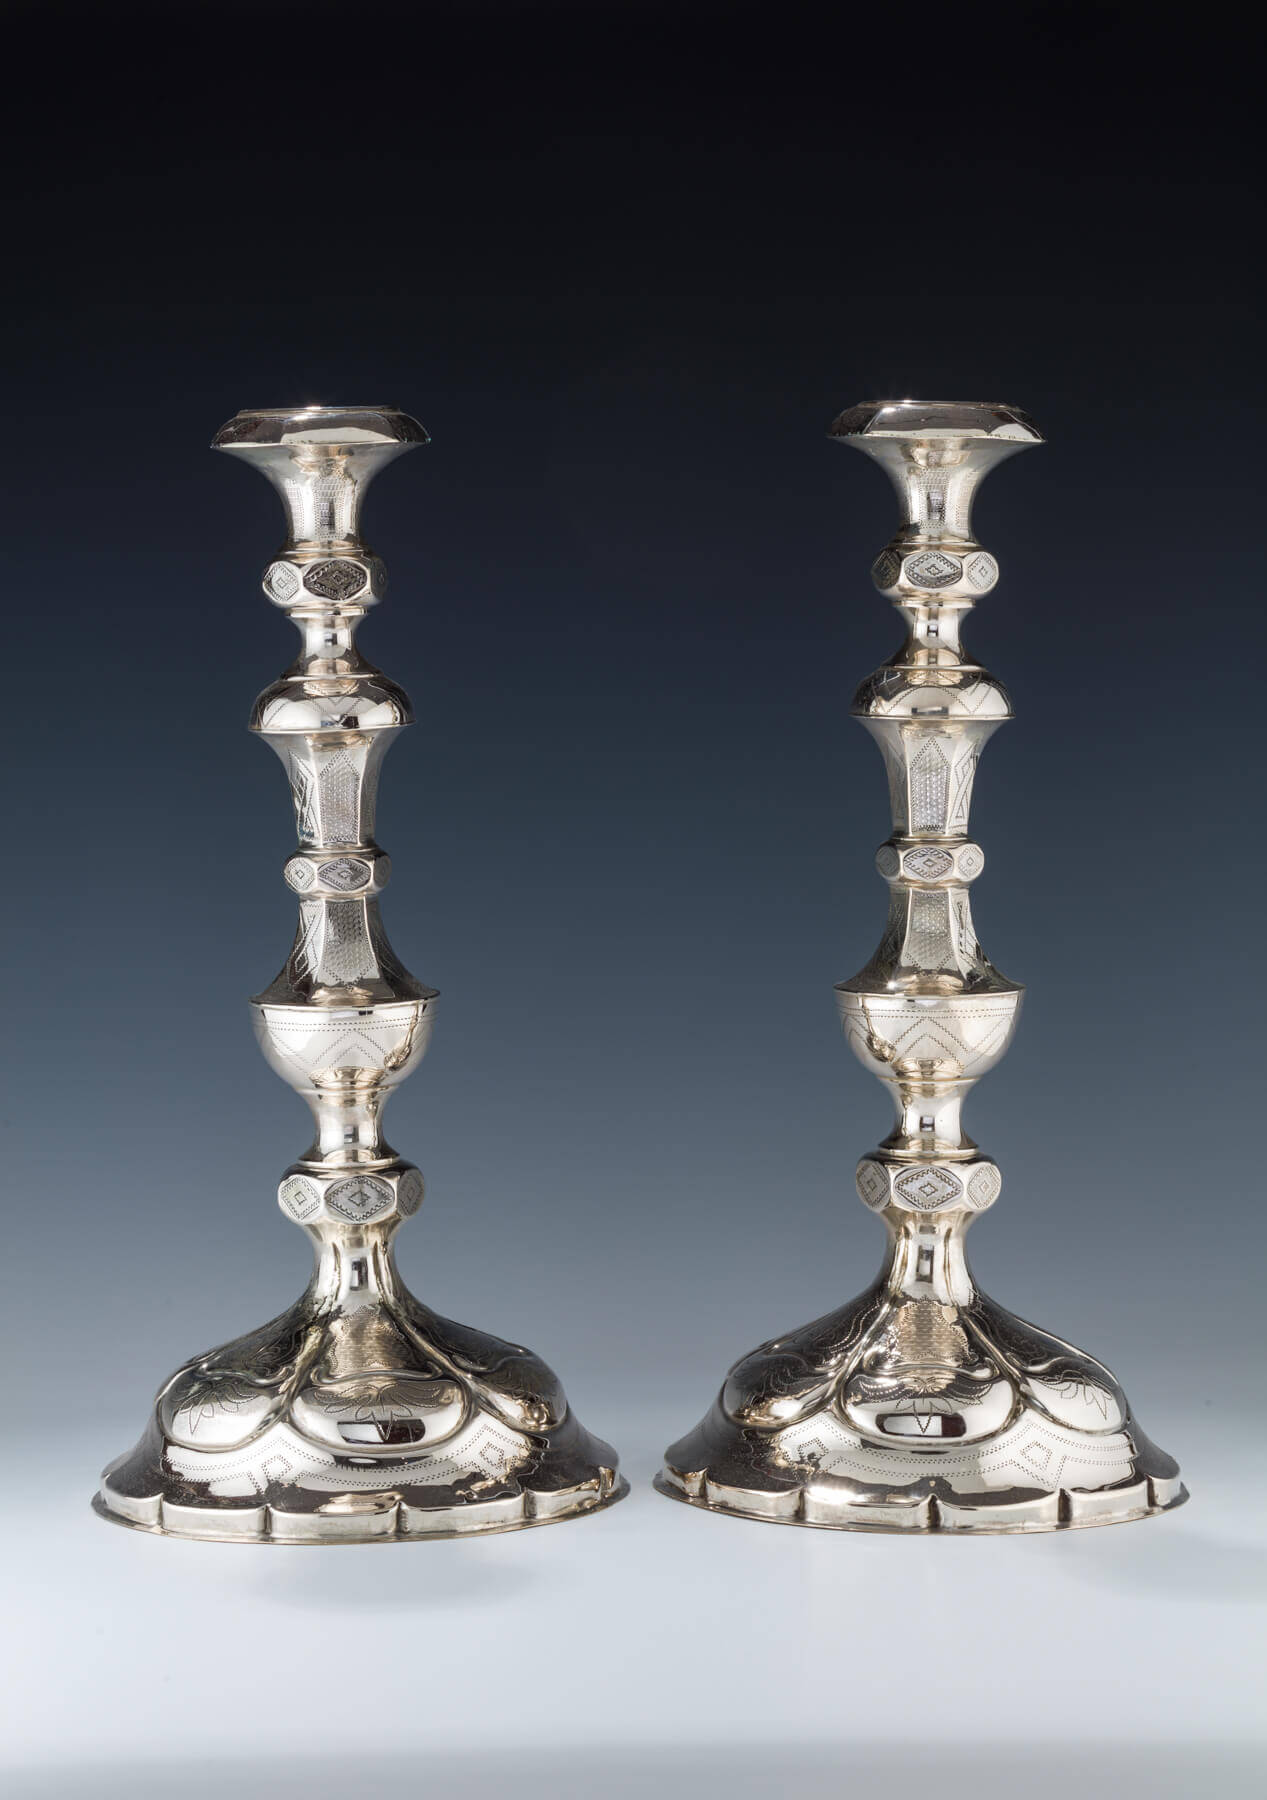 043. A PAIR OF LARGE SILVER CANDLESTICKS